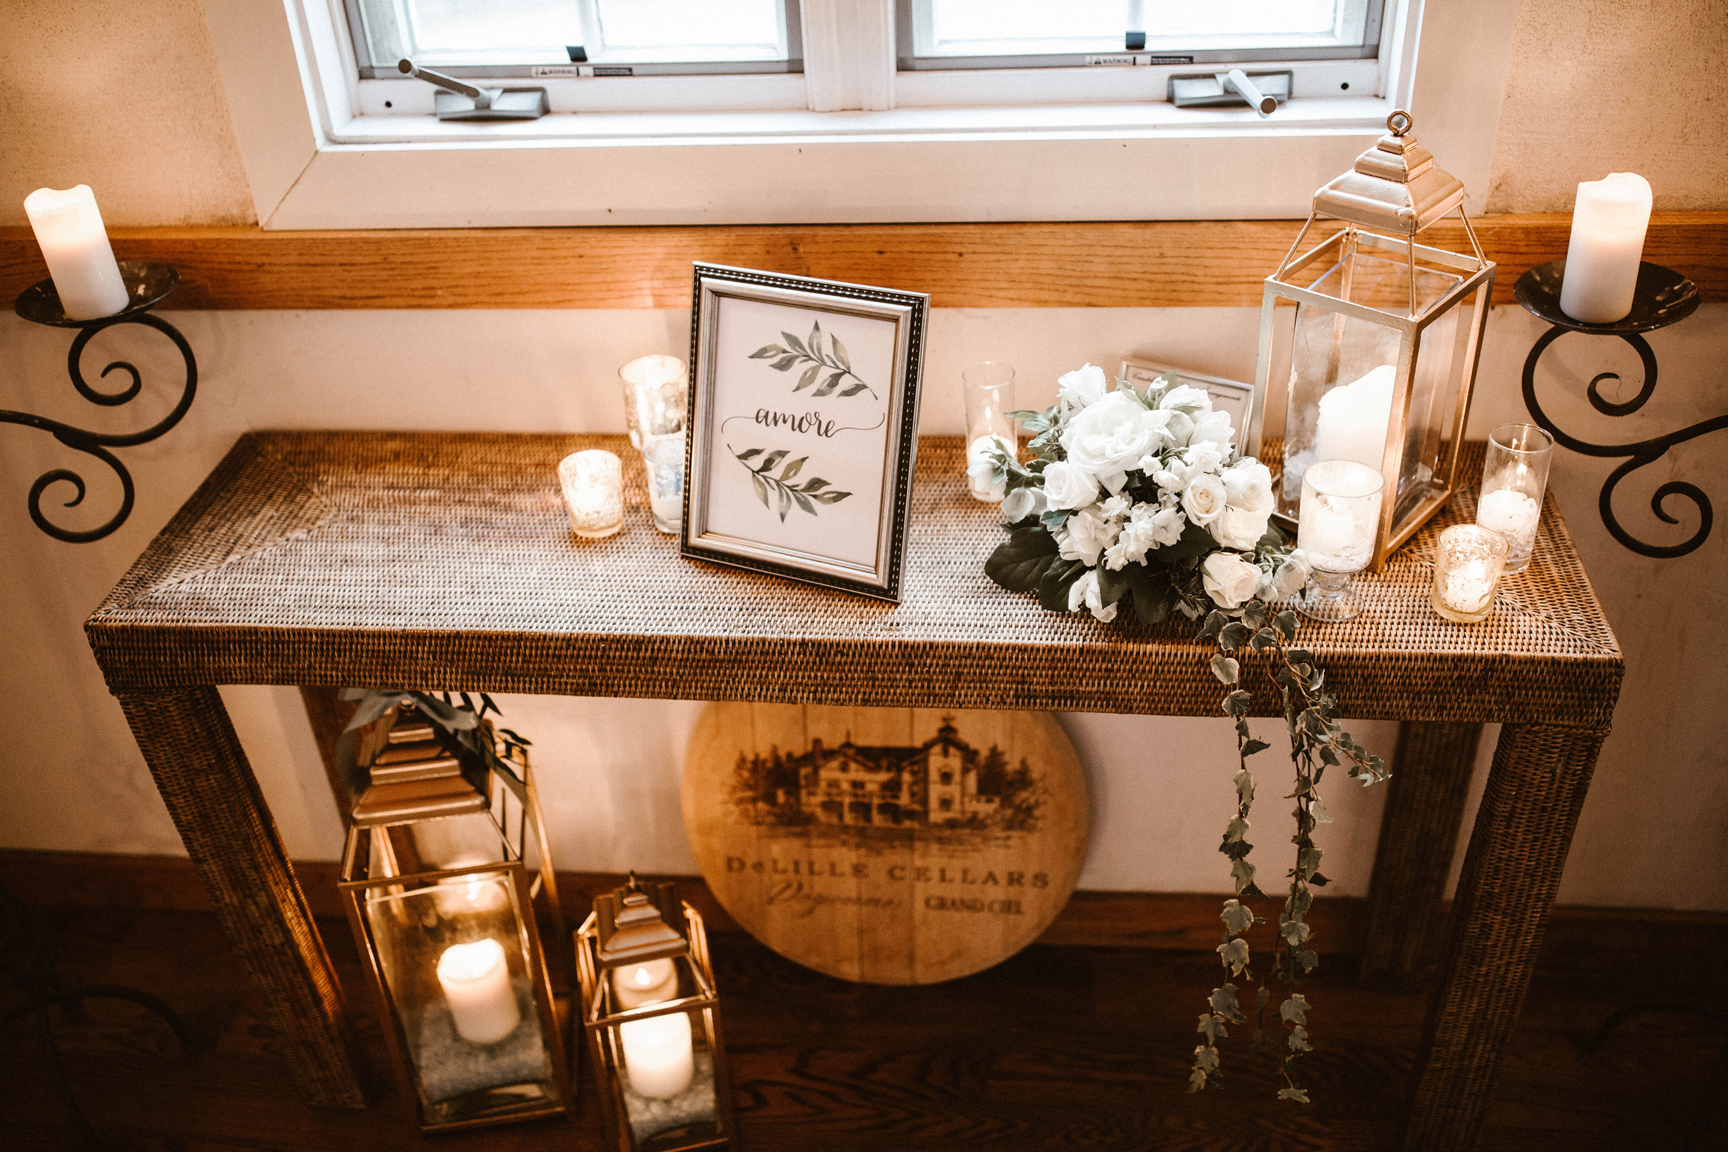 DeLille+Cellars_The+Chateau_Woodinville_2017_Weddings+In+Woodinville146.jpg